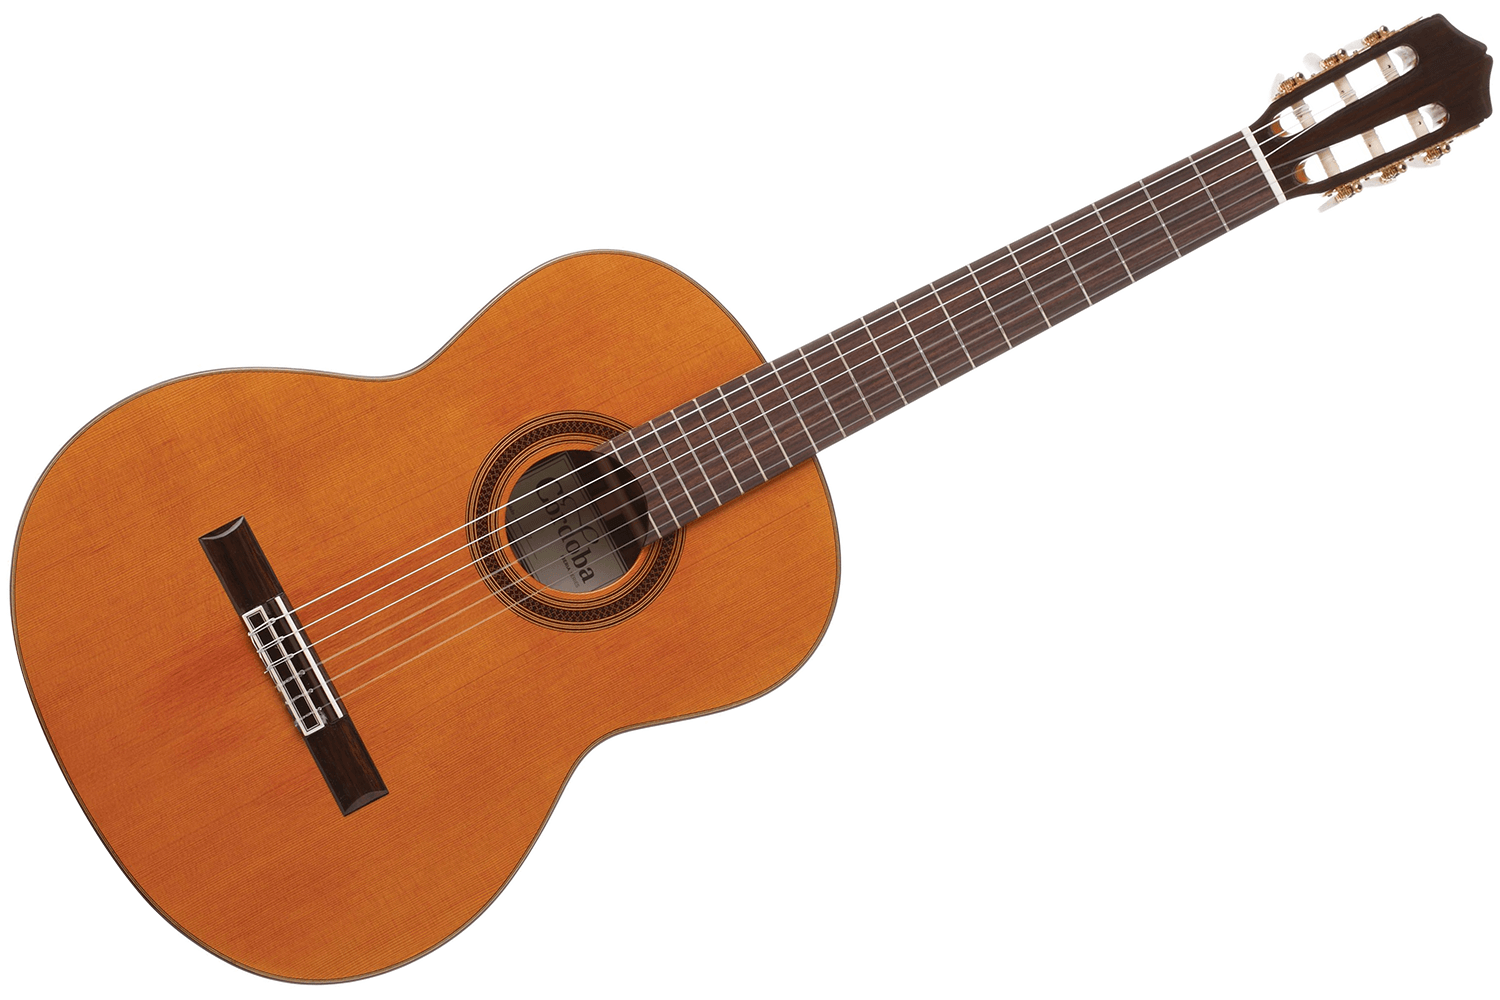 Đàn guitar Cordoba C7-CD